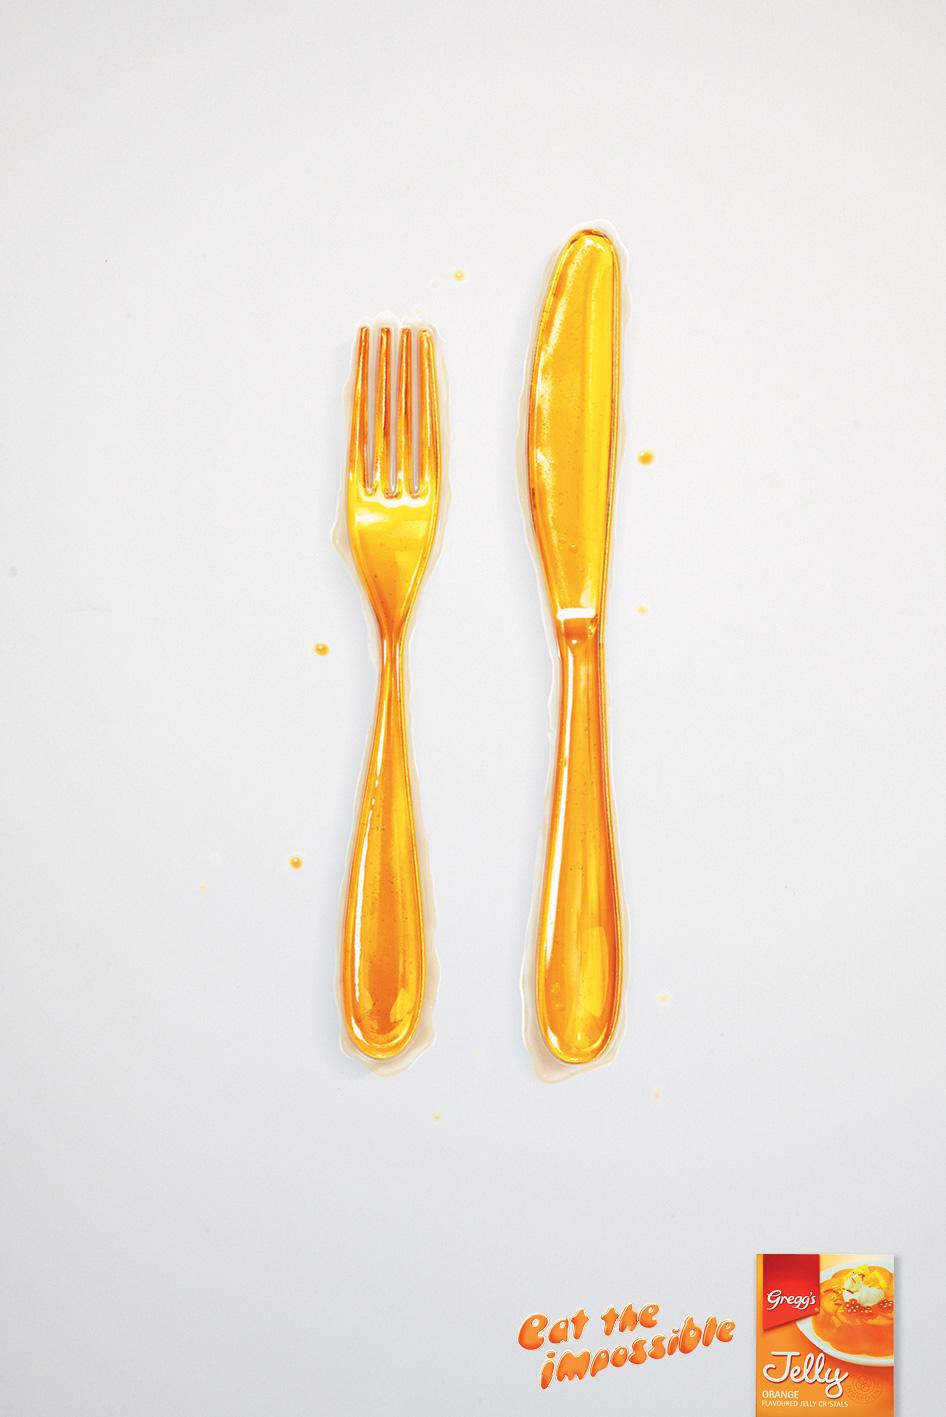 Gregg's Jelly Print Ad -  Eat the impossible, Knife & Fork